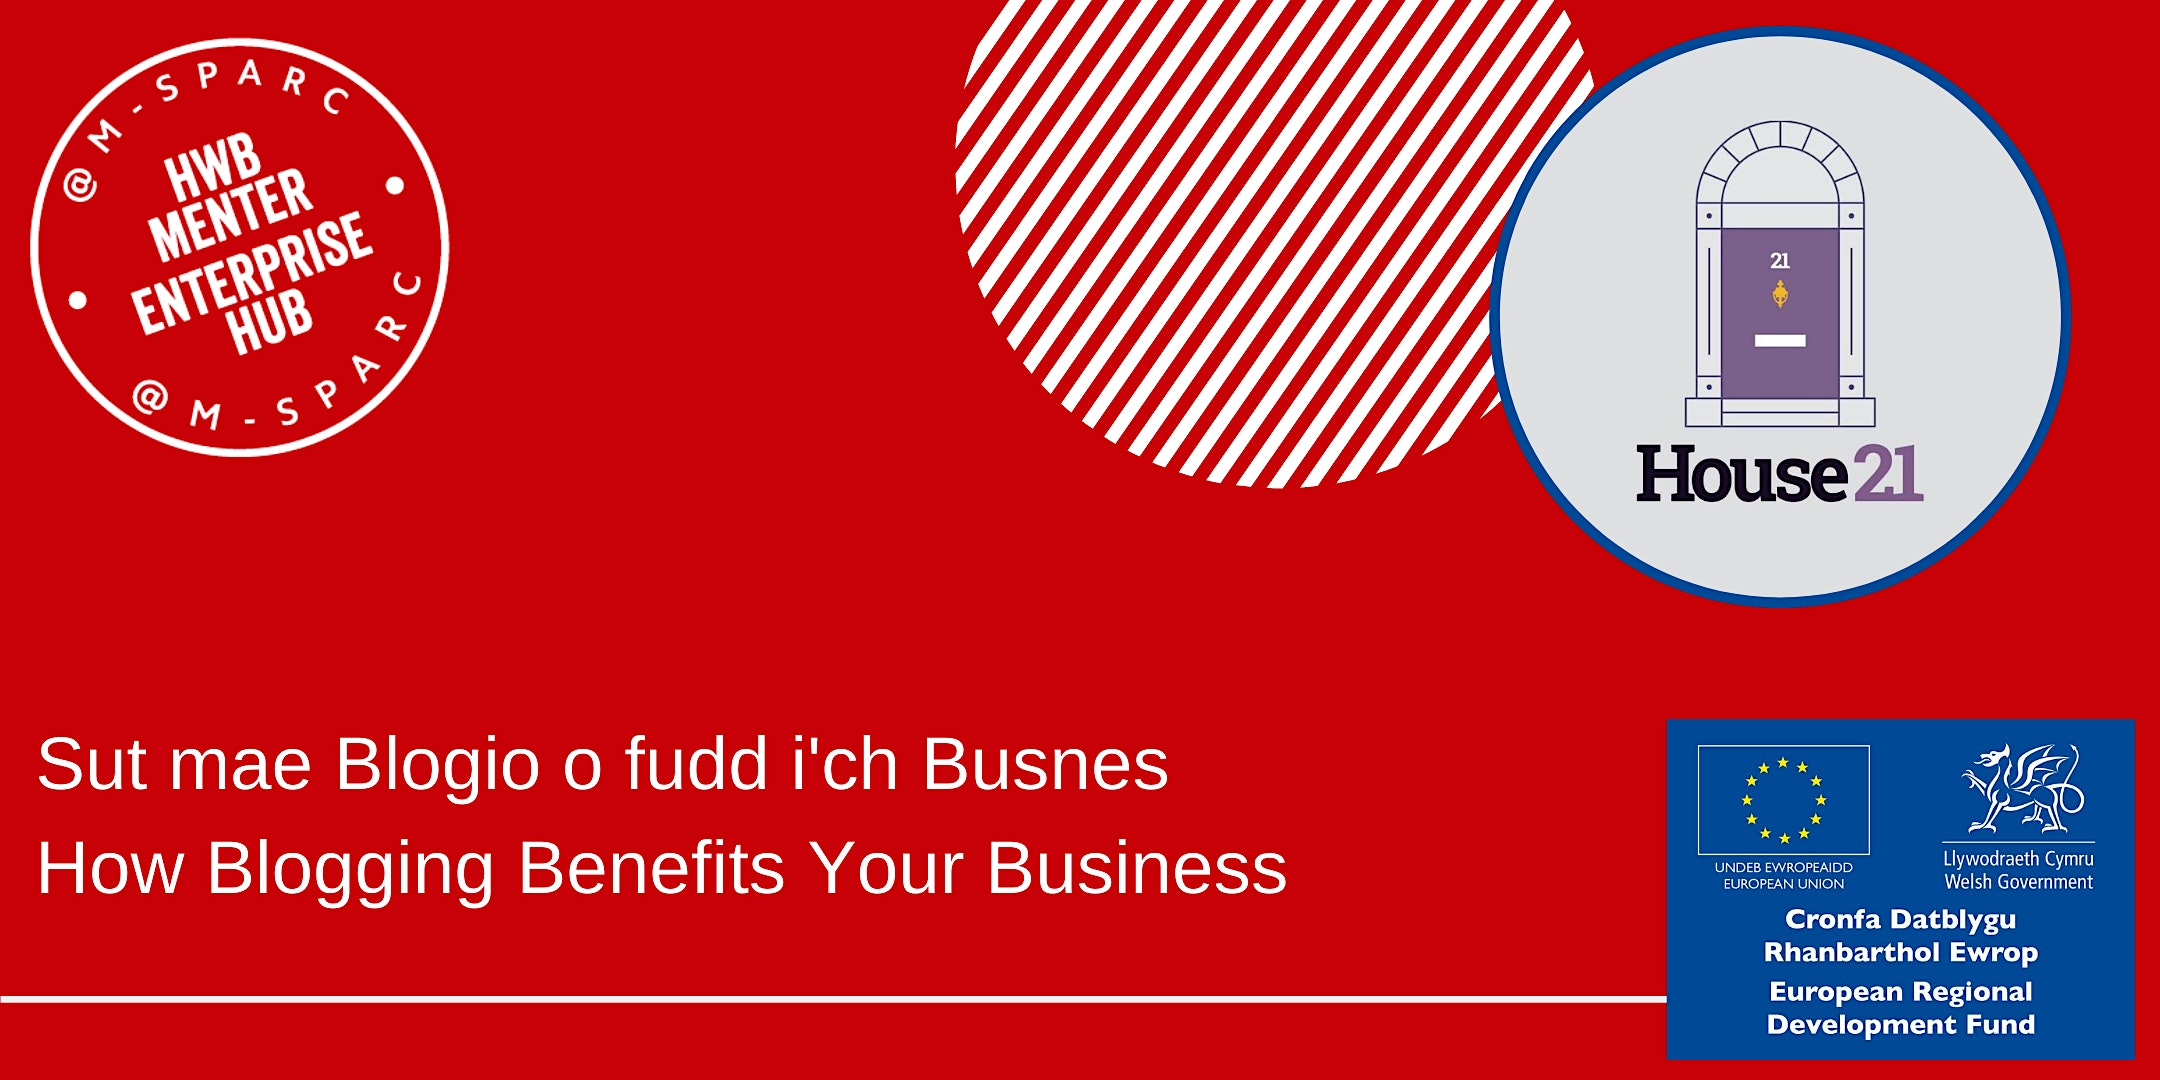 Sut mae Blogio o fudd i'ch Busnes/How Blogging Benefits Your Business